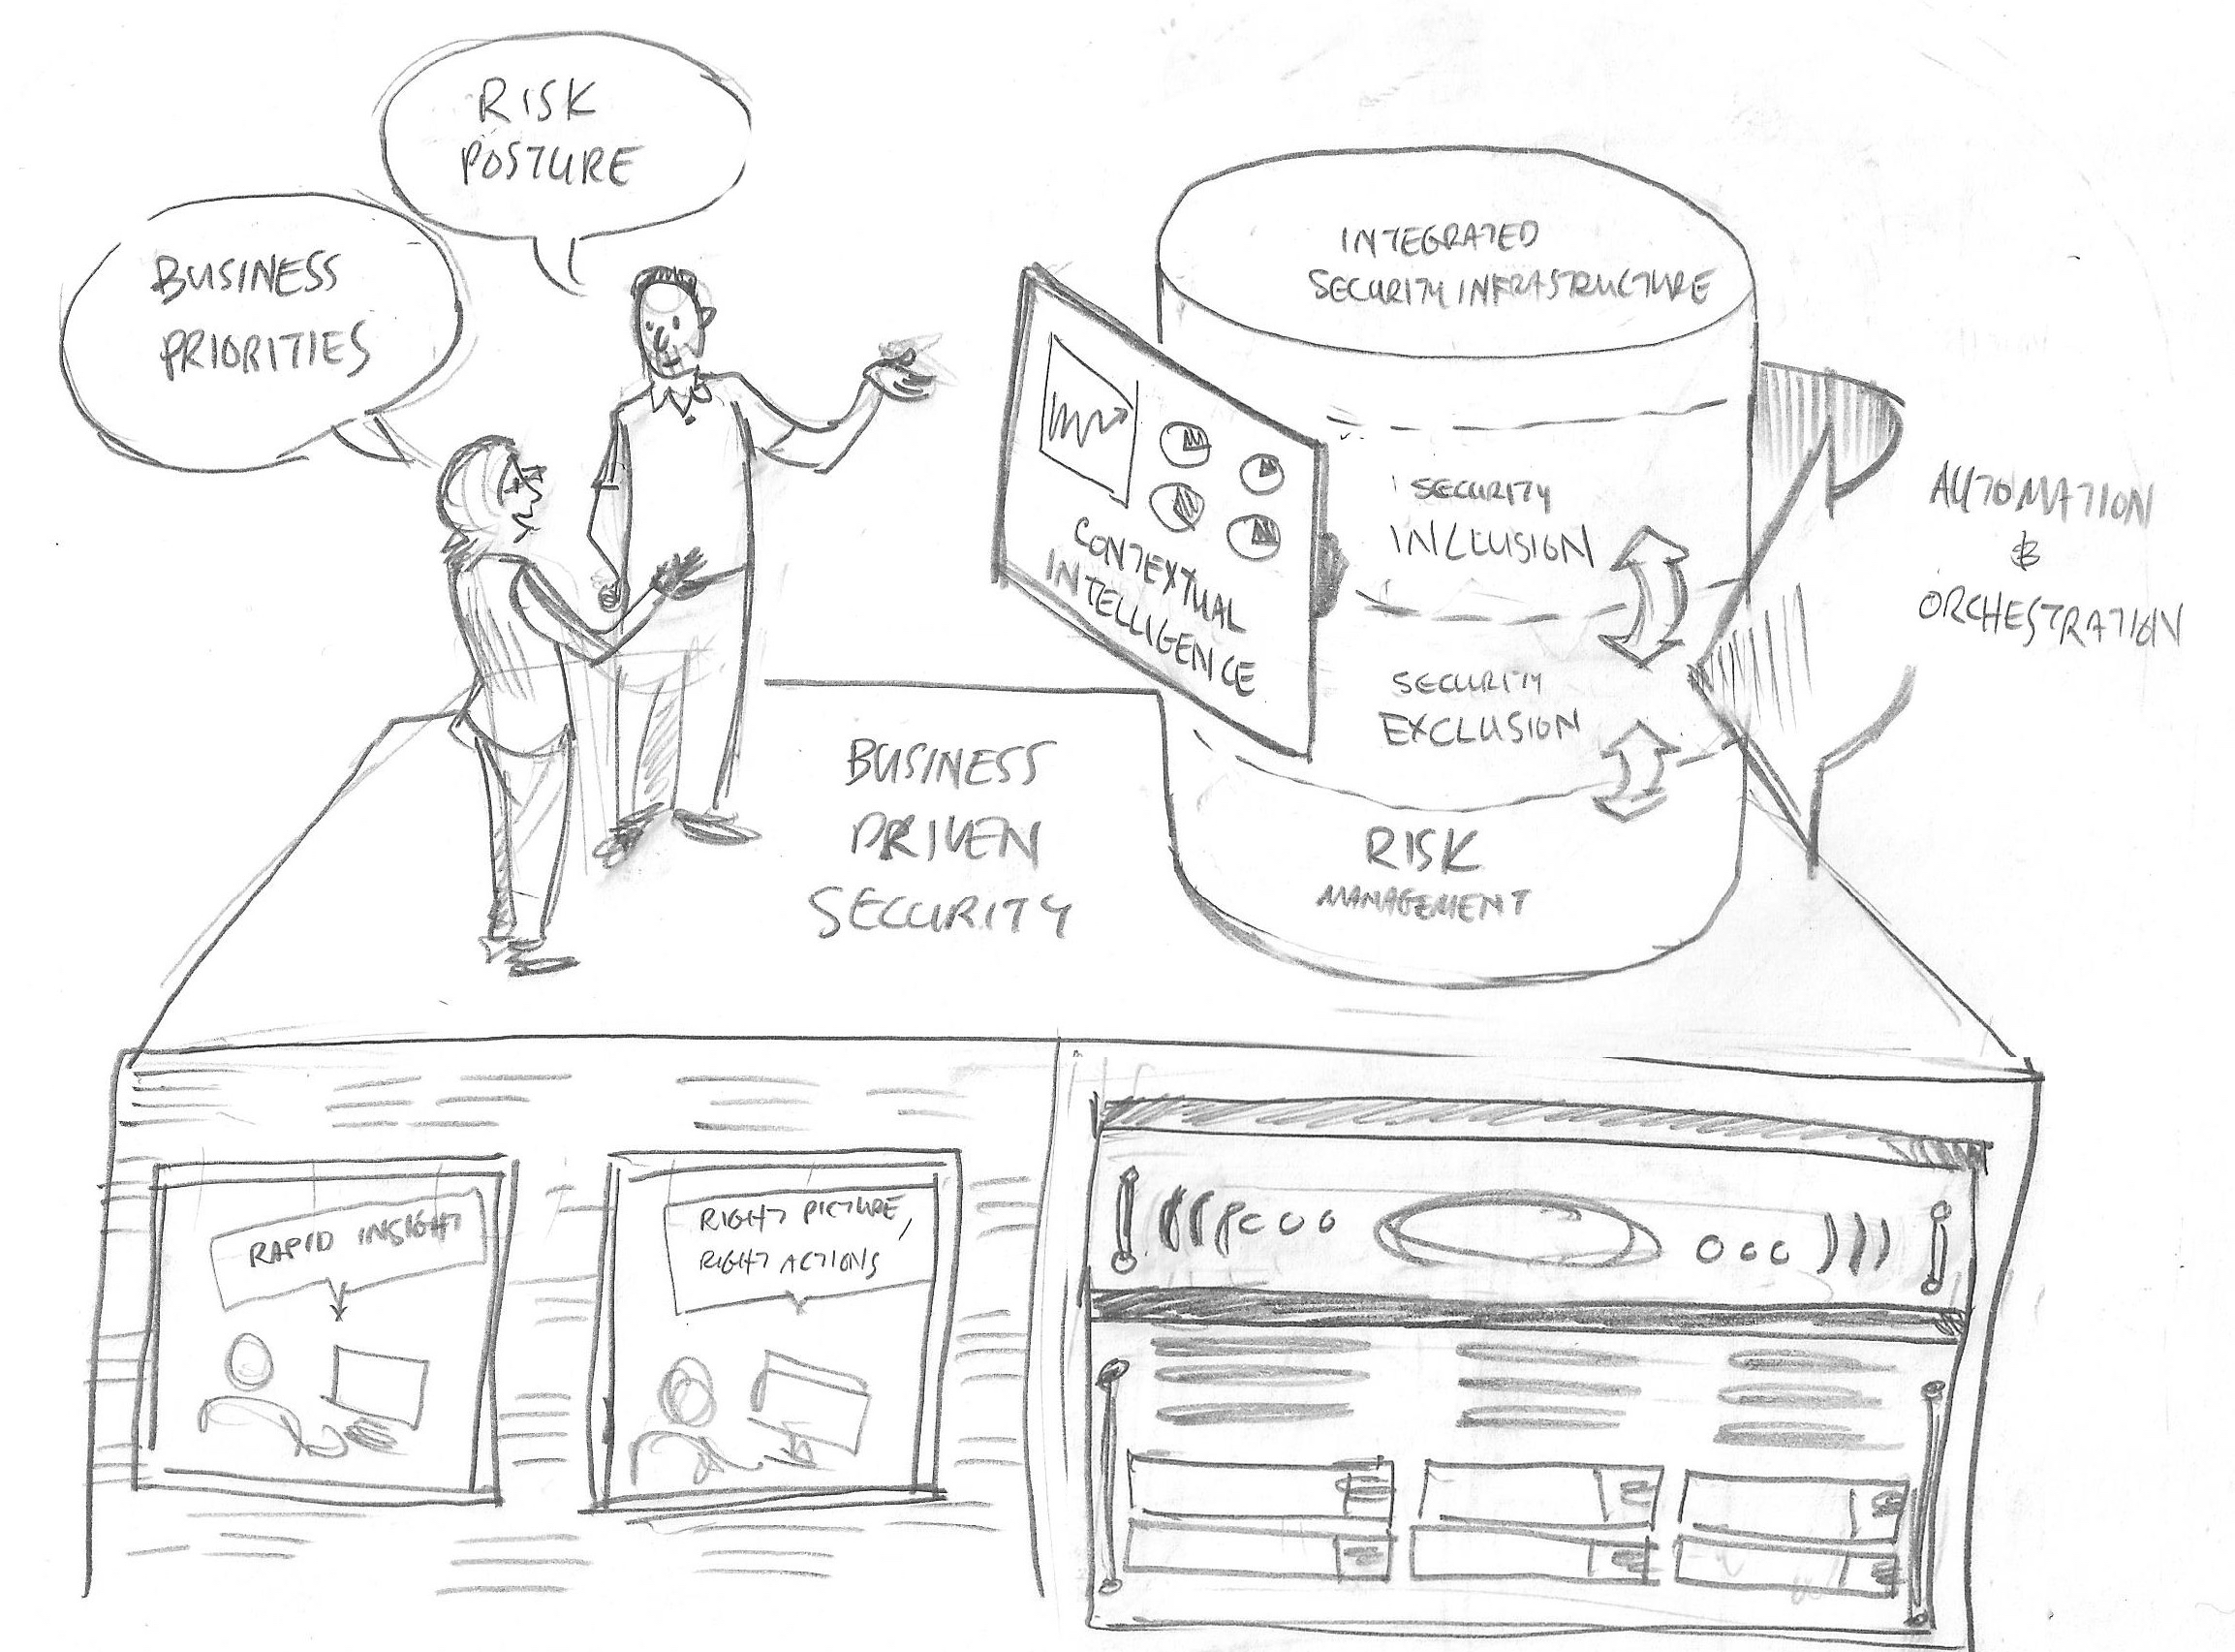 Whiteboarding as a Model for Content Marketing